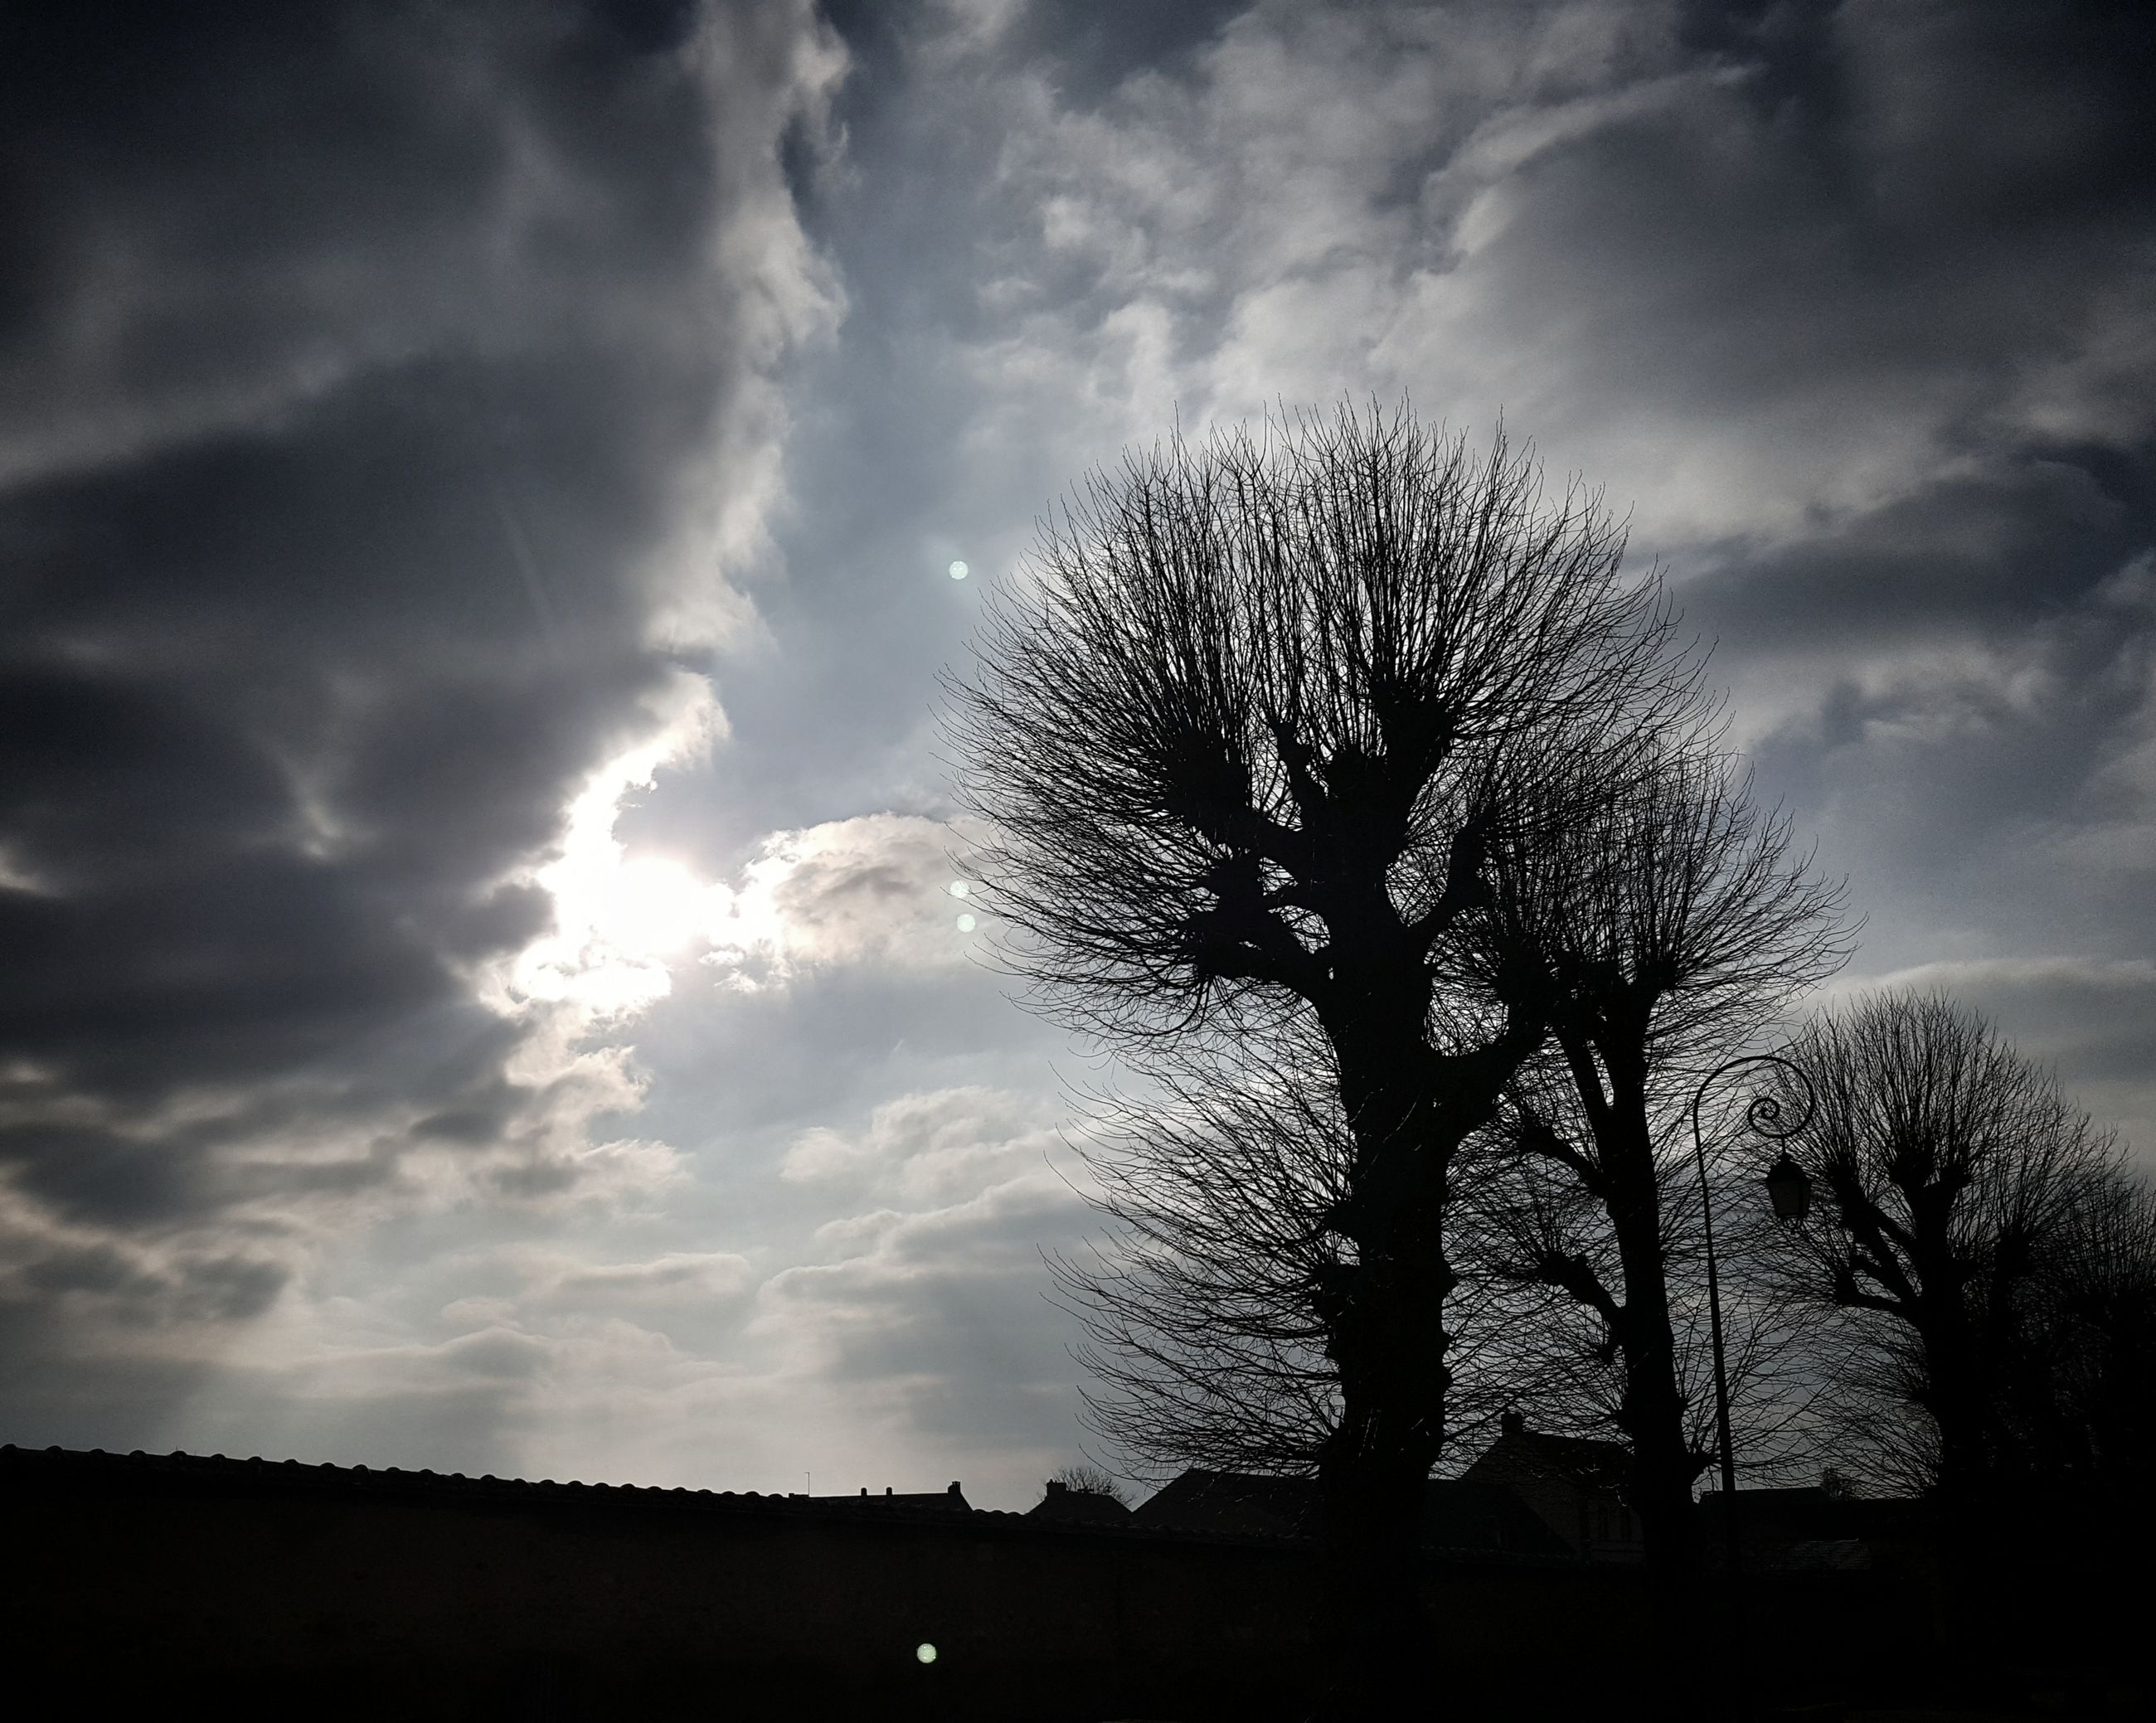 sky, cloud - sky, tree, silhouette, low angle view, tranquility, beauty in nature, nature, outdoors, no people, bare tree, day